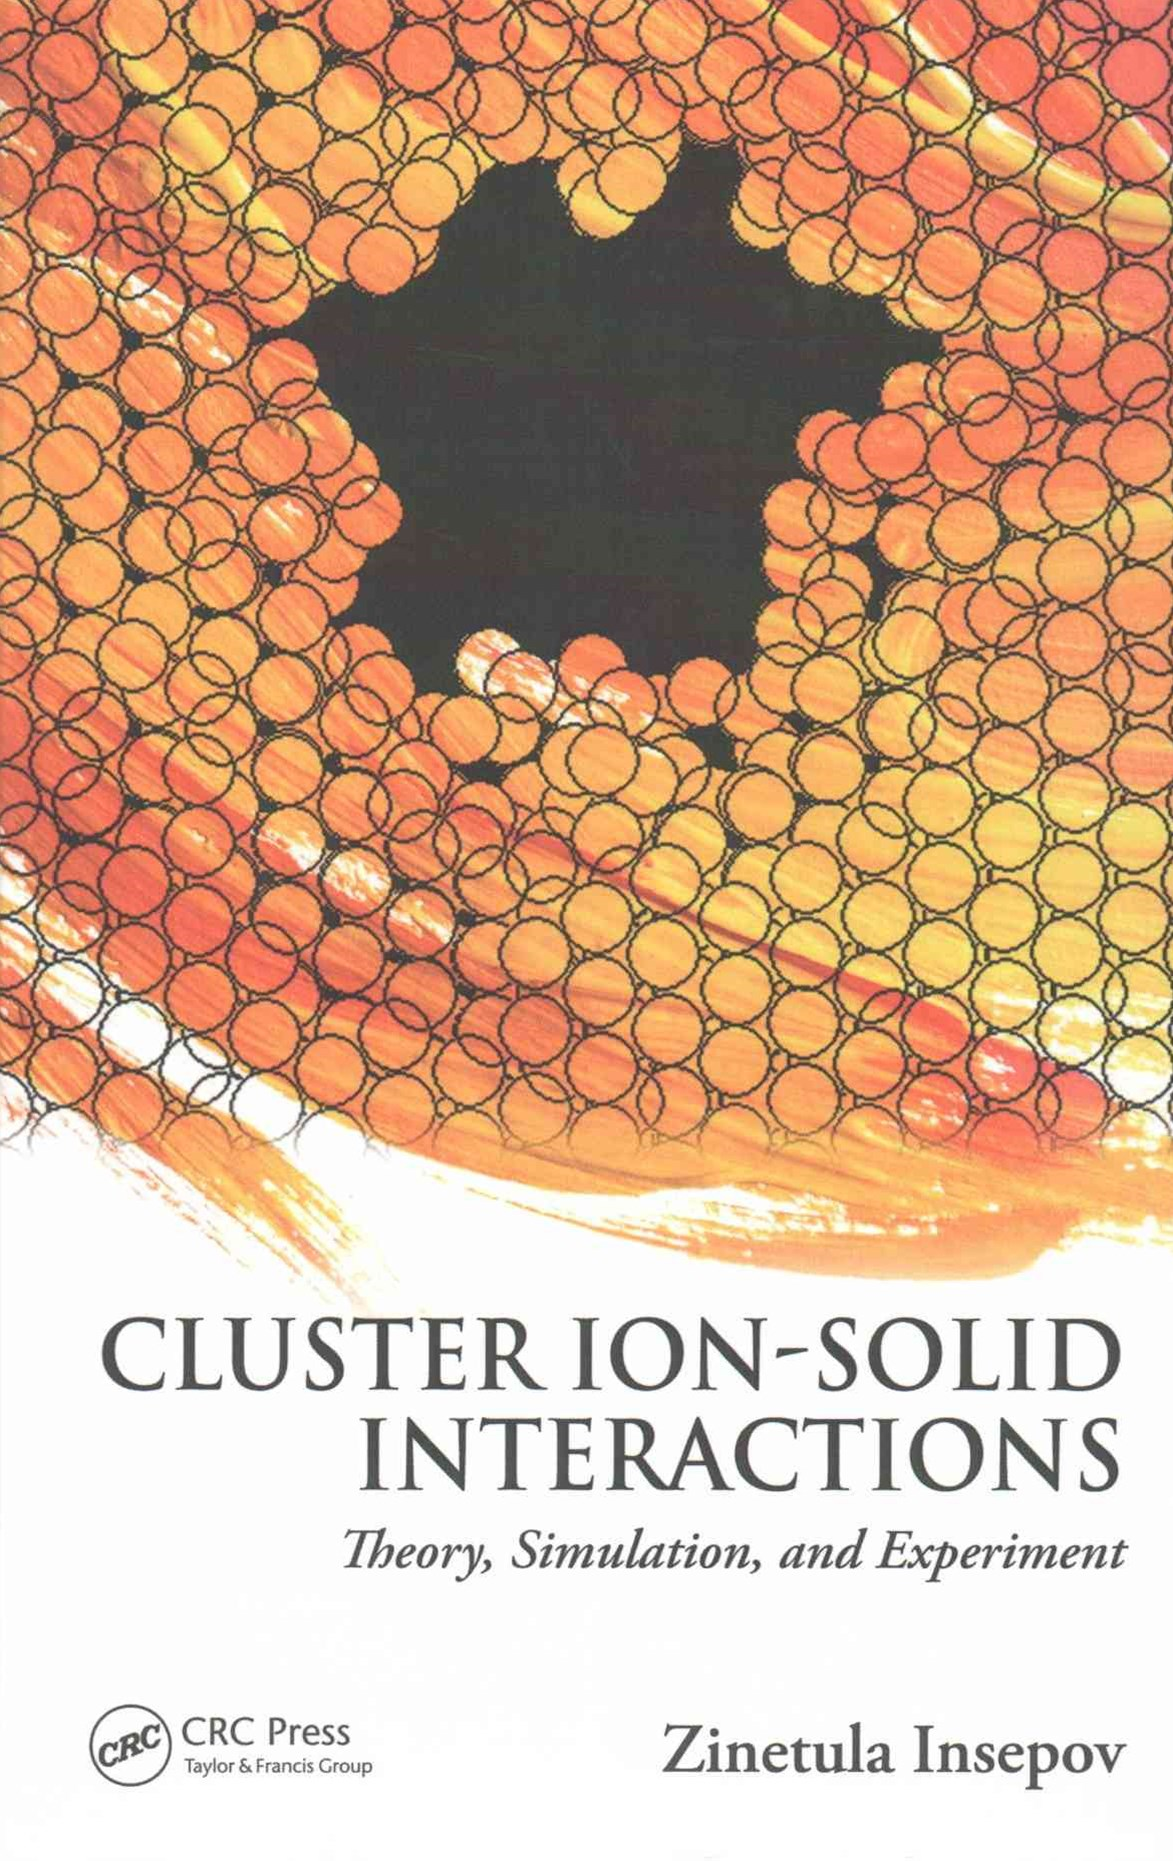 Cluster Ion-Solid Interactions